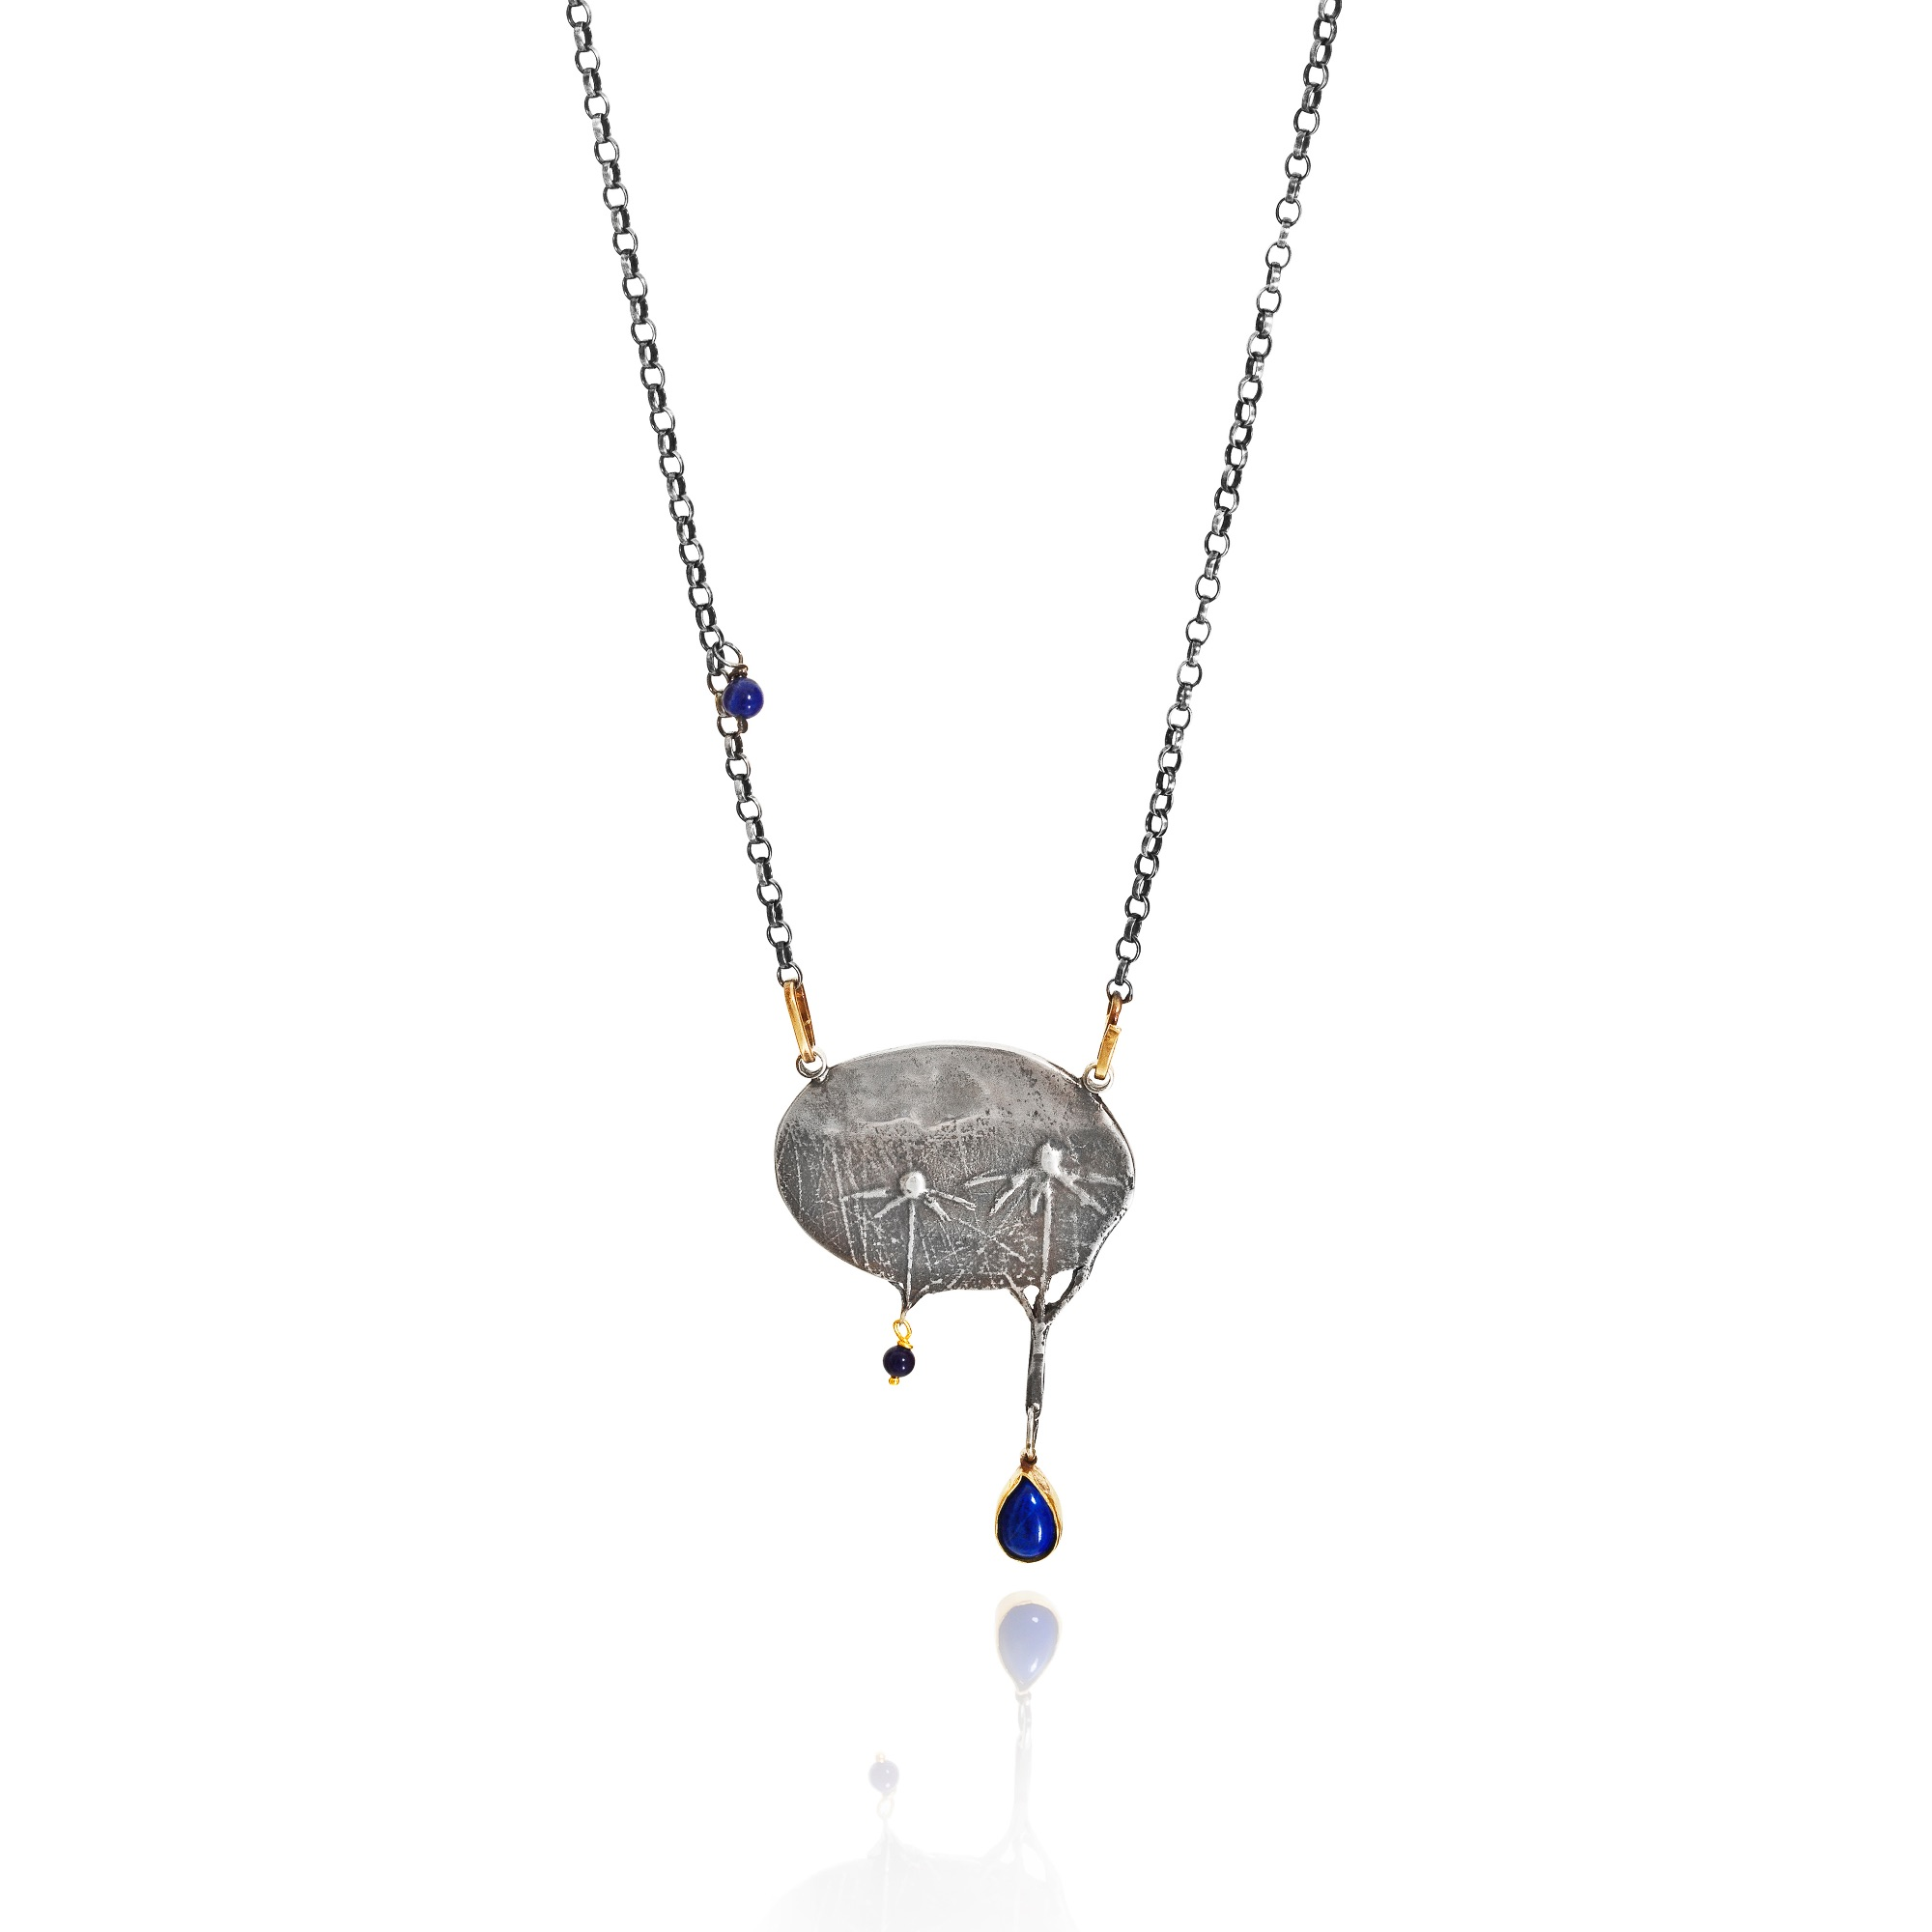 cathy-newell-price-lapis-necklace